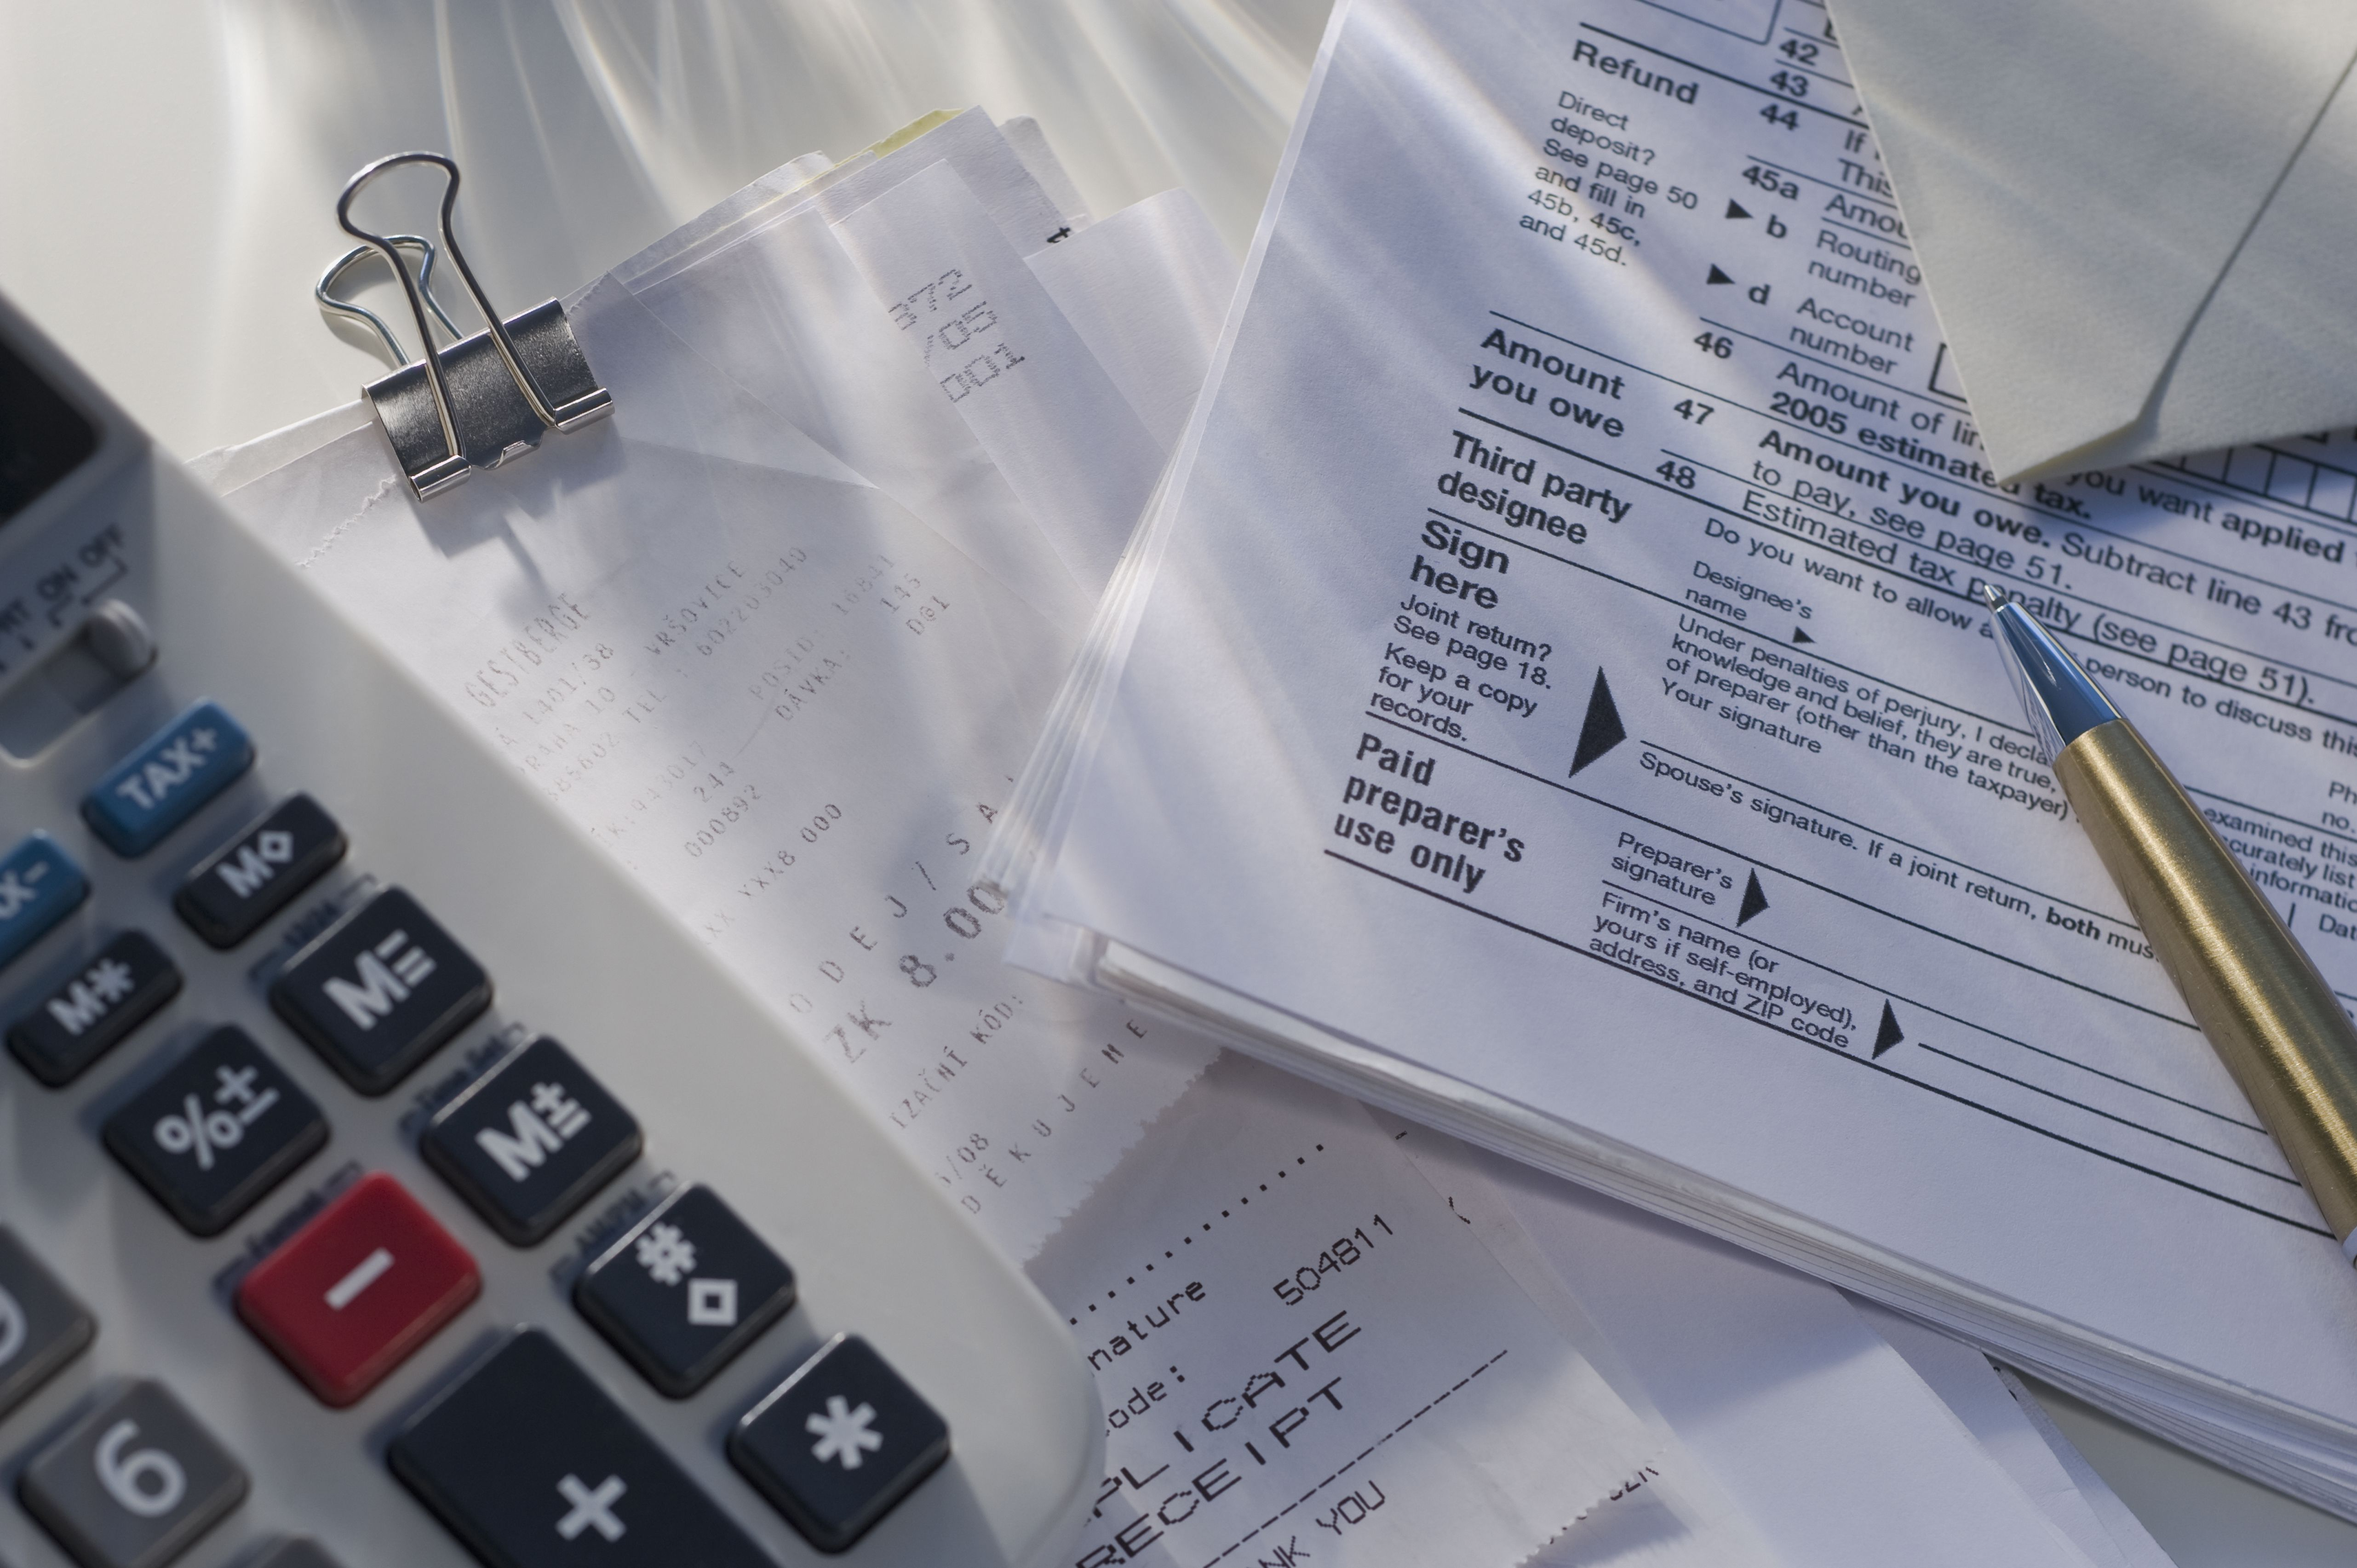 Additional Extensions Of Time To File A Tax Return